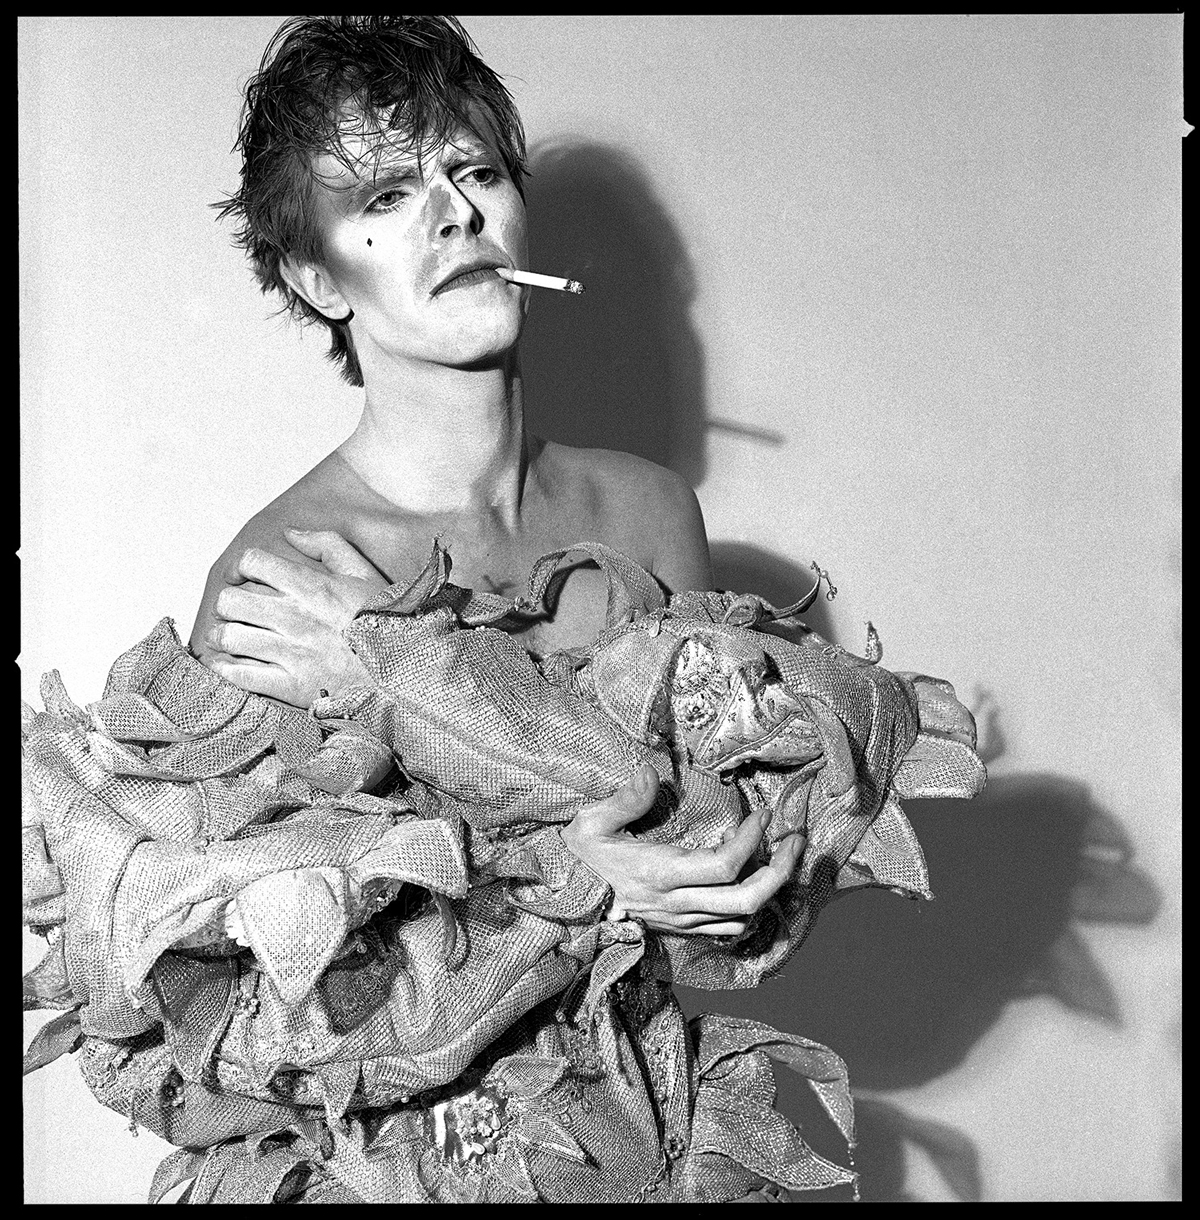 David Bowie Scary Monster smoking, London 1980; Photo Duffy © Duffy Archive